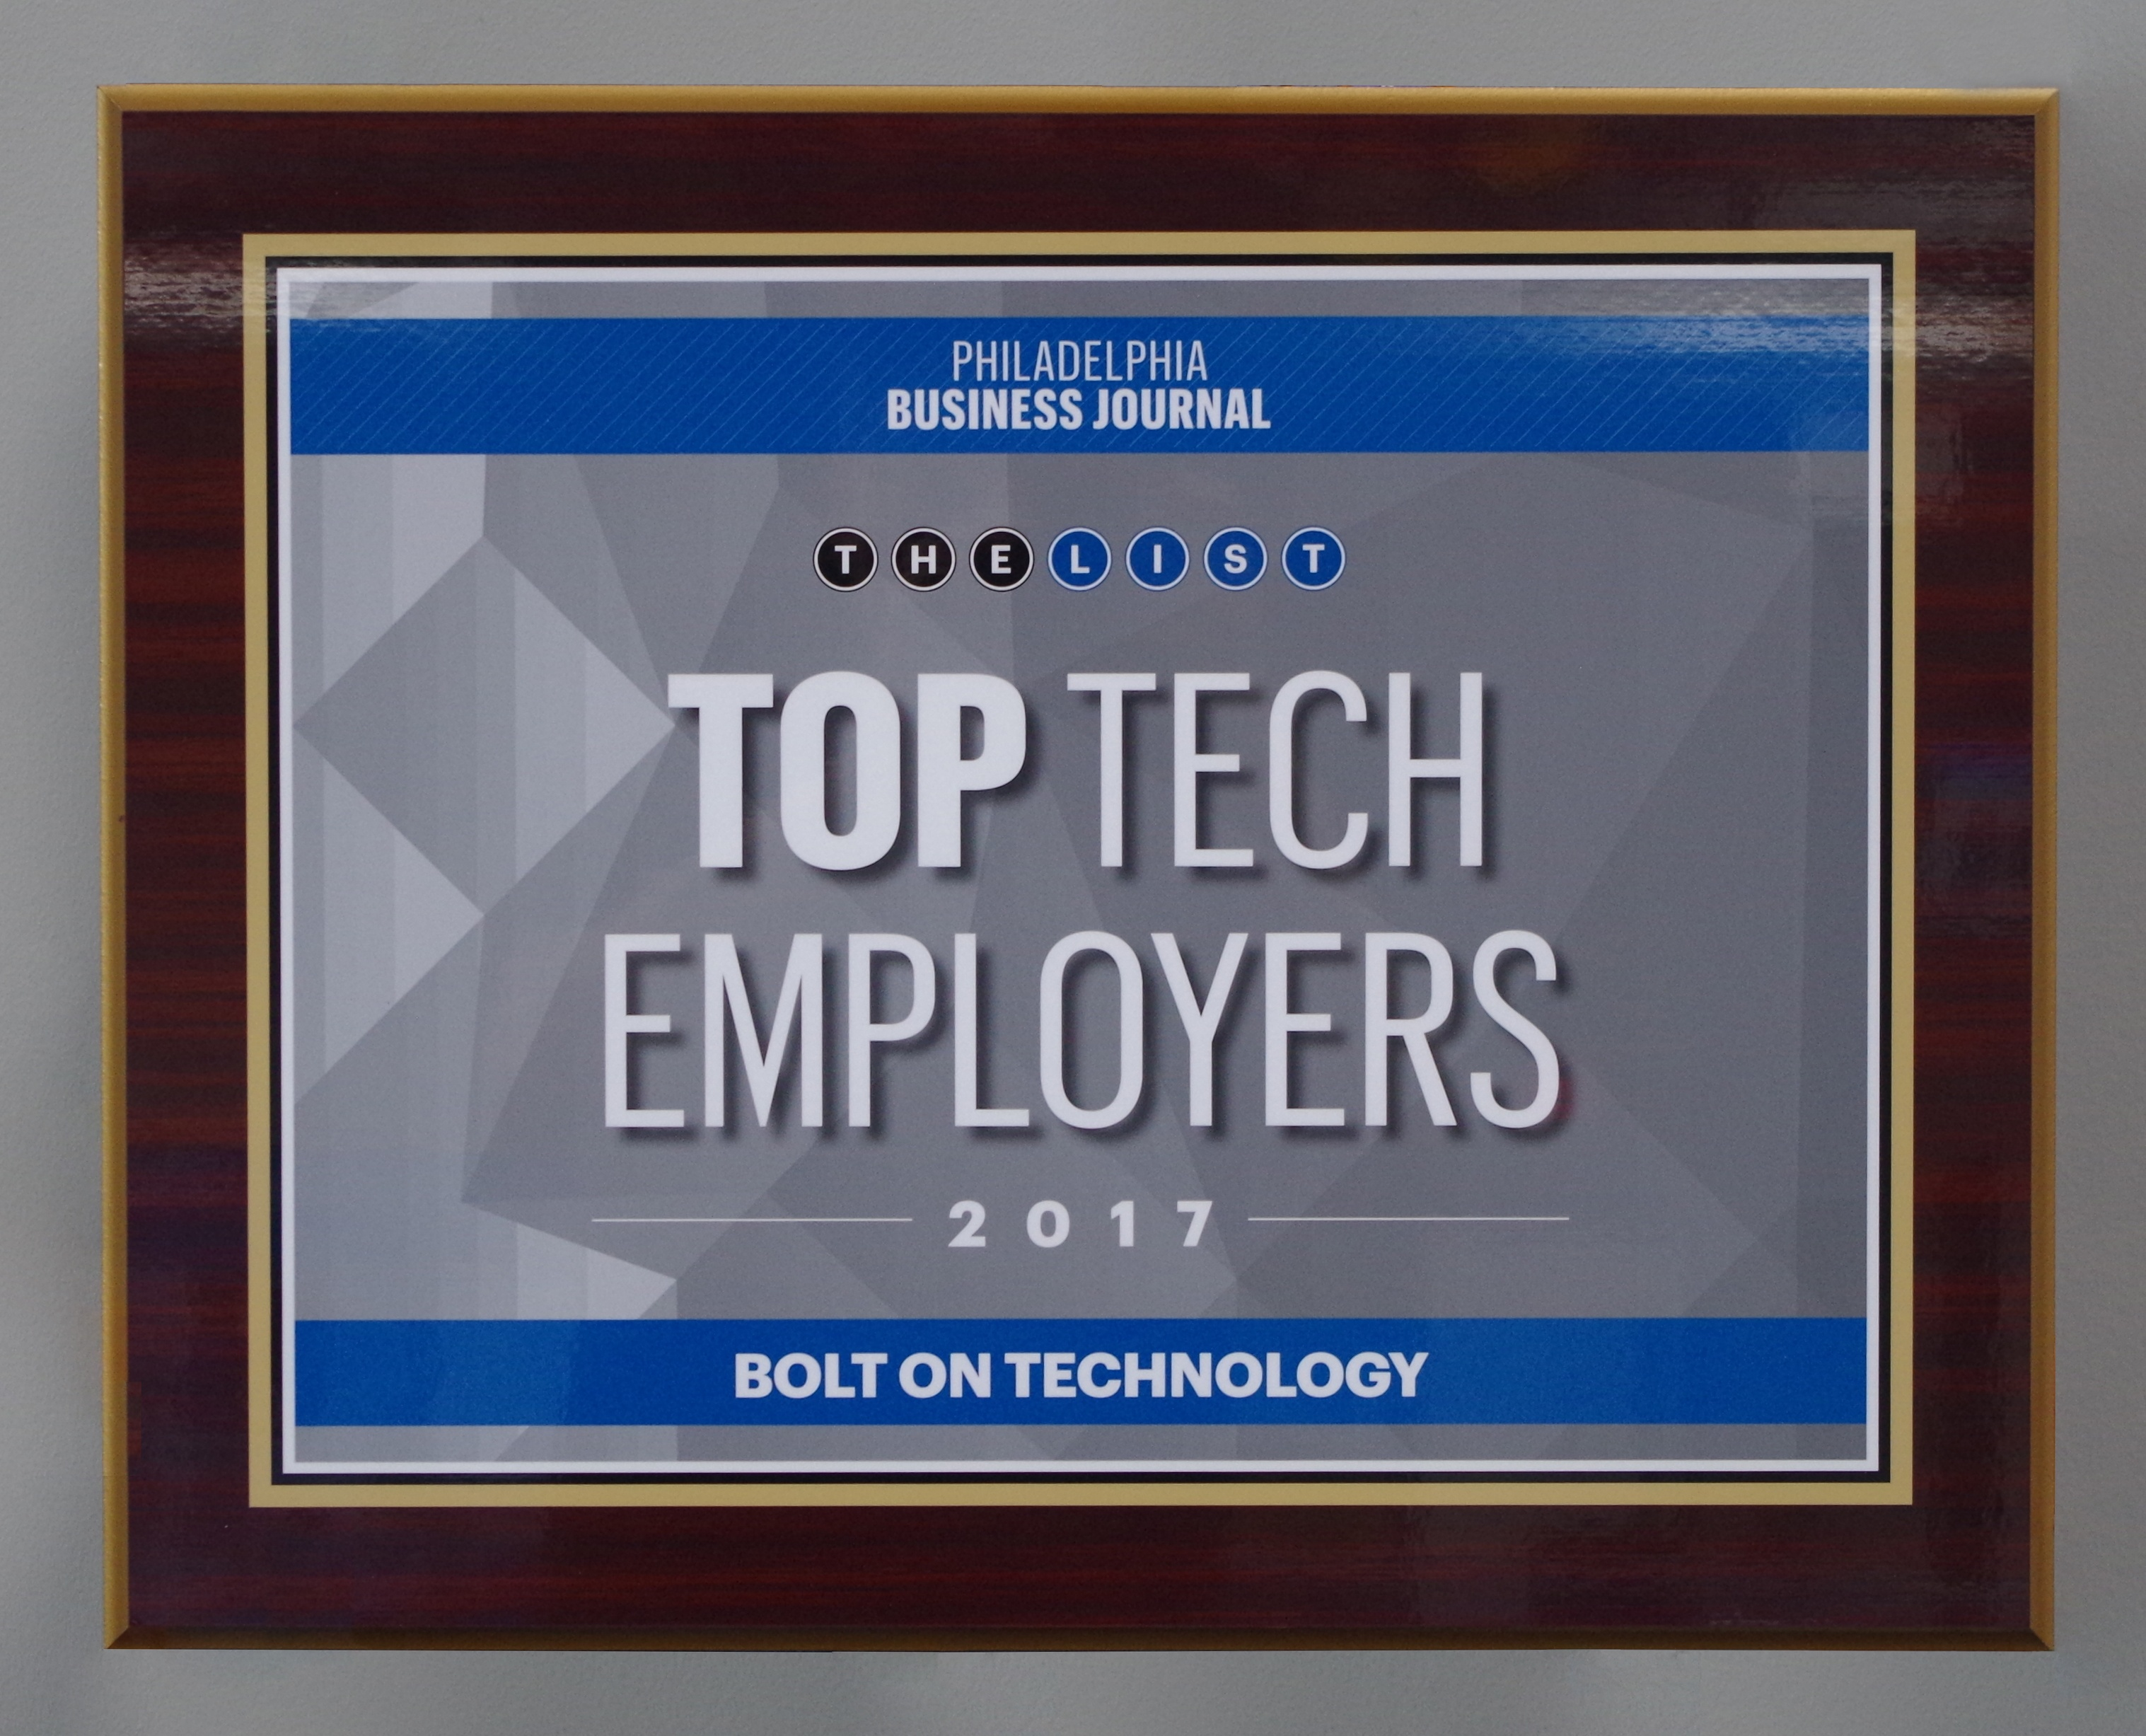 We Won the Top Tech Employers Award